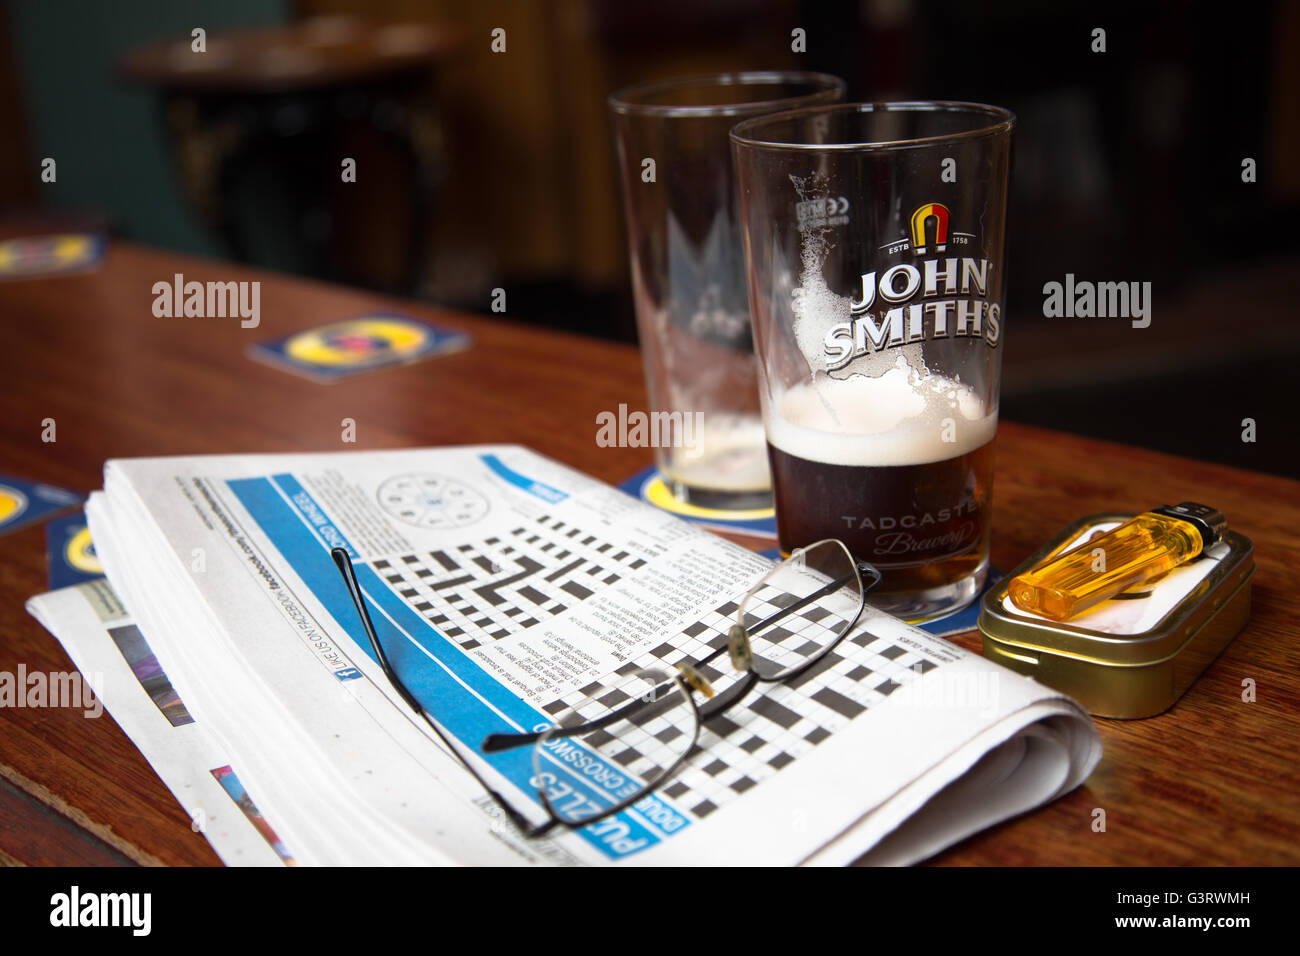 A lunch break view of the days local crossword puzzle with the remains of a pint of beer/ale in an English pub/bar. - Stock Image